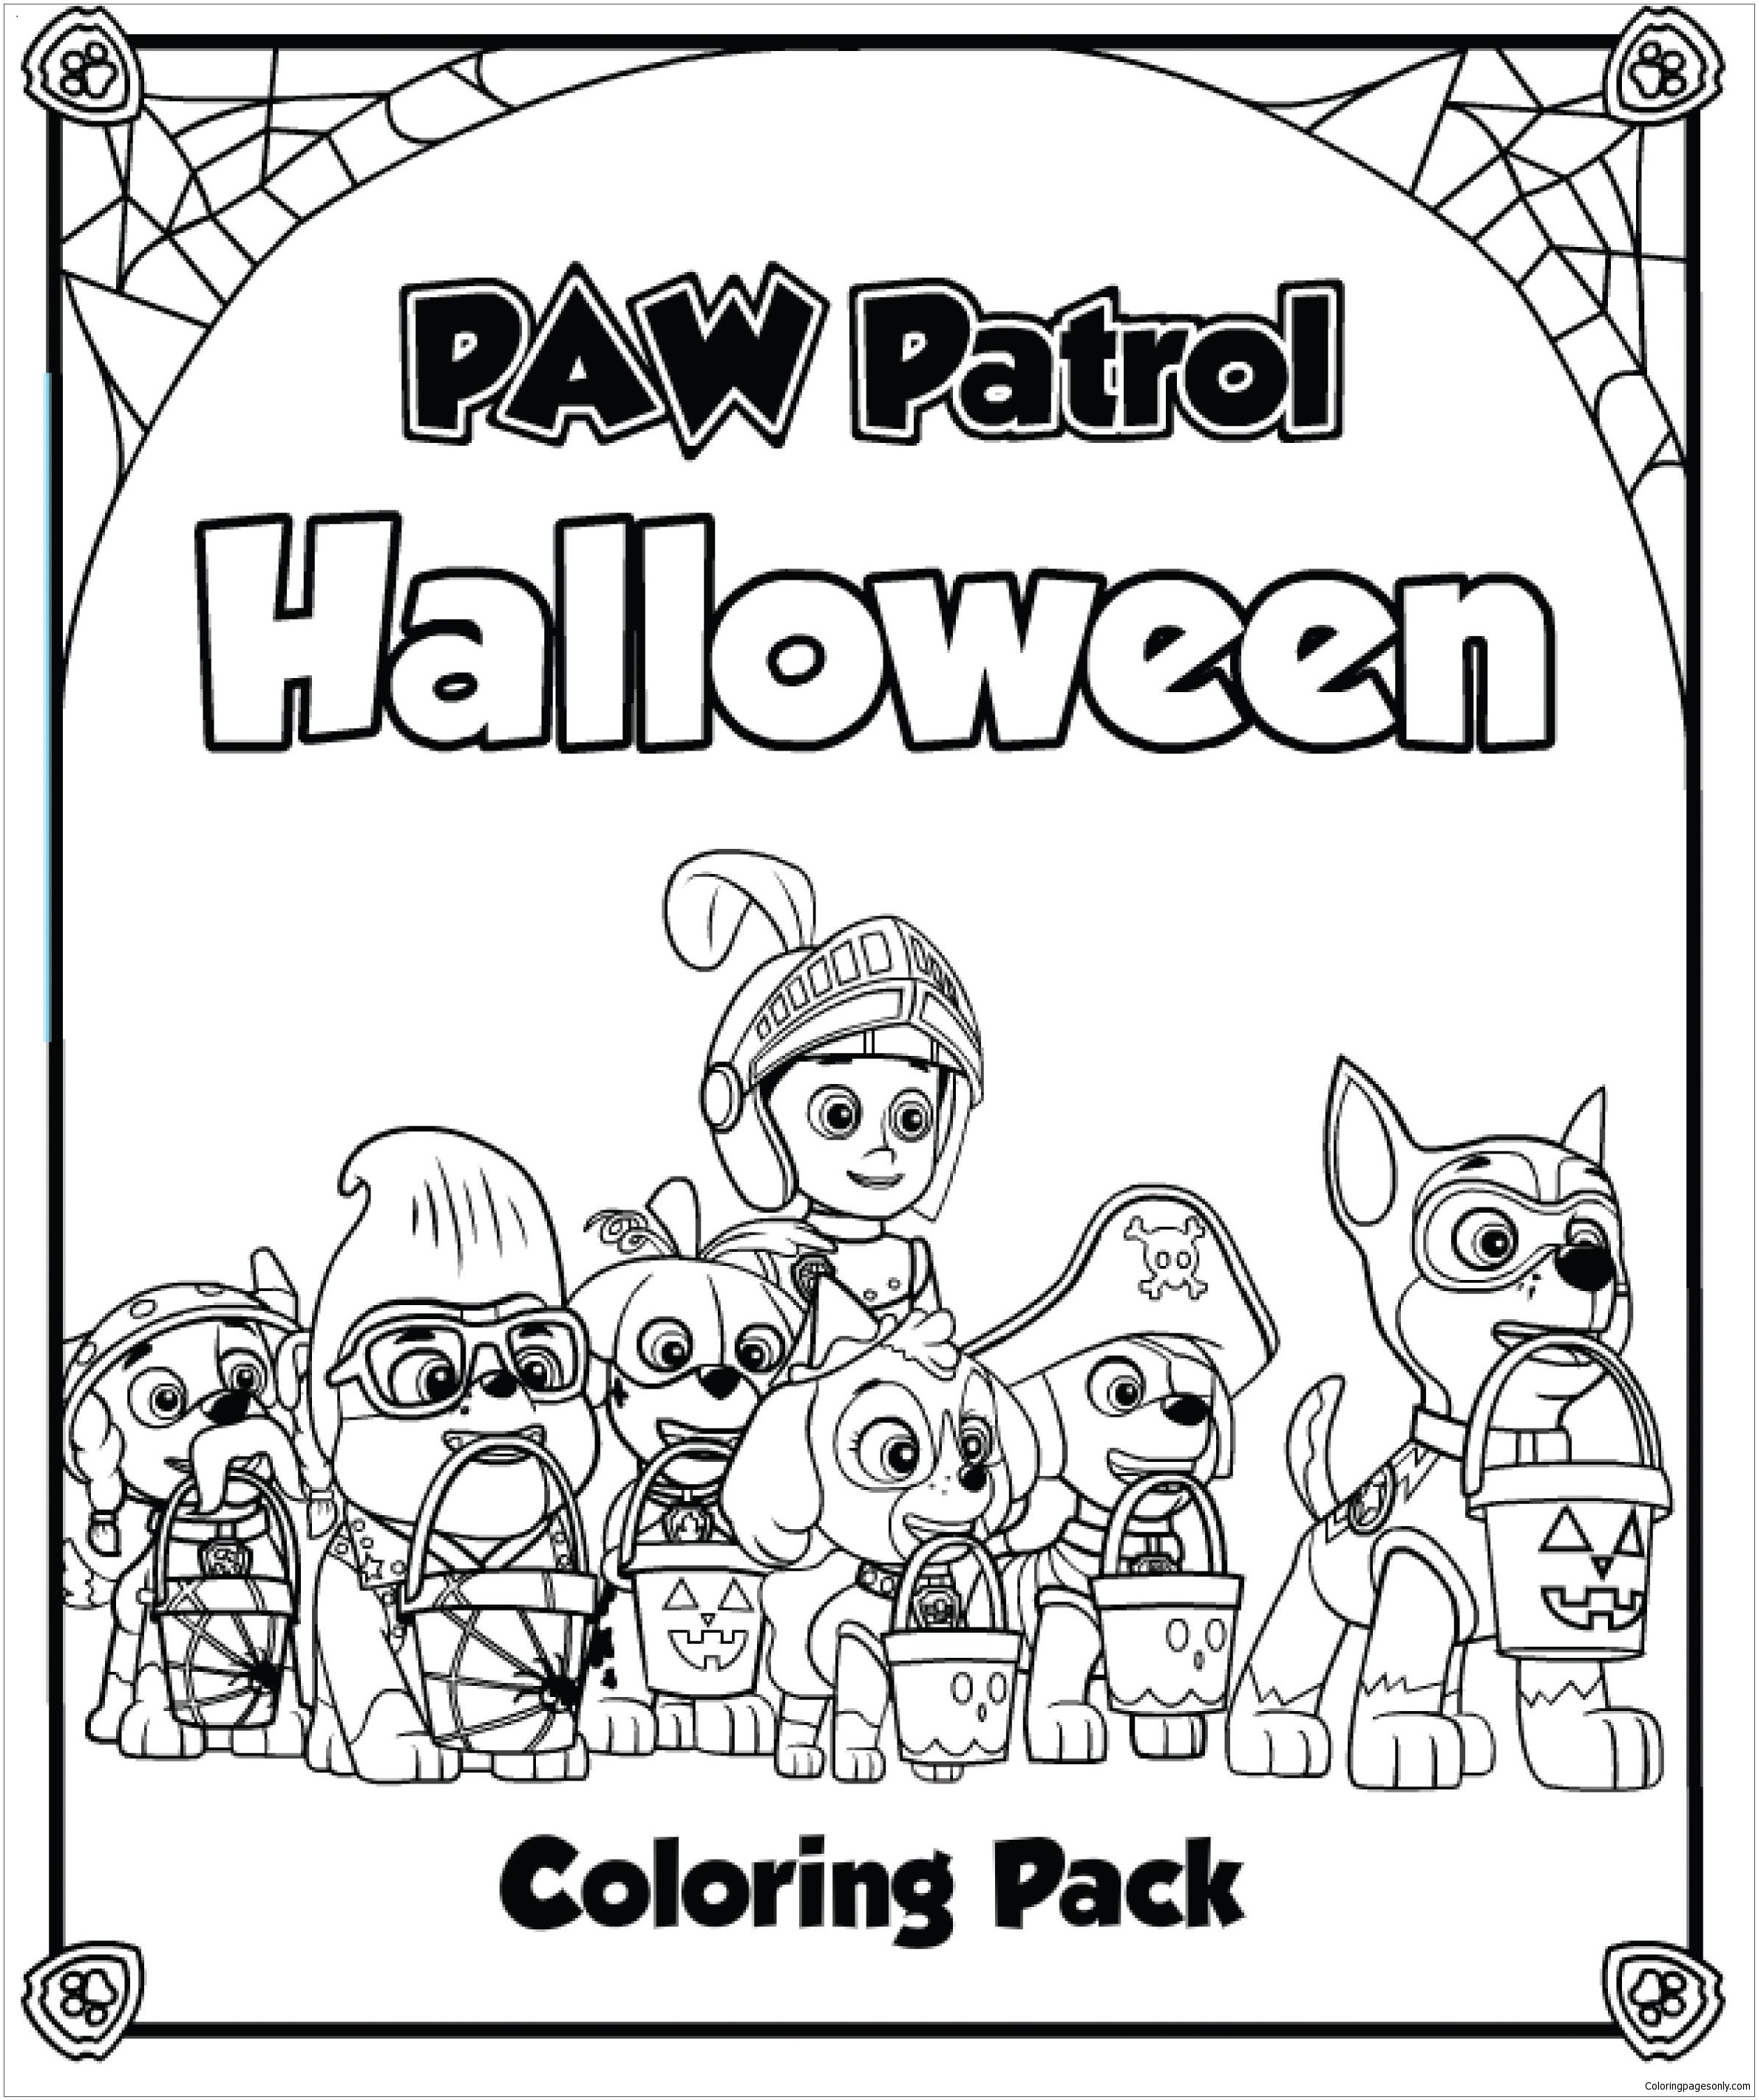 Paw Patrol Halloween 2 Coloring Page - Free Coloring Pages ...